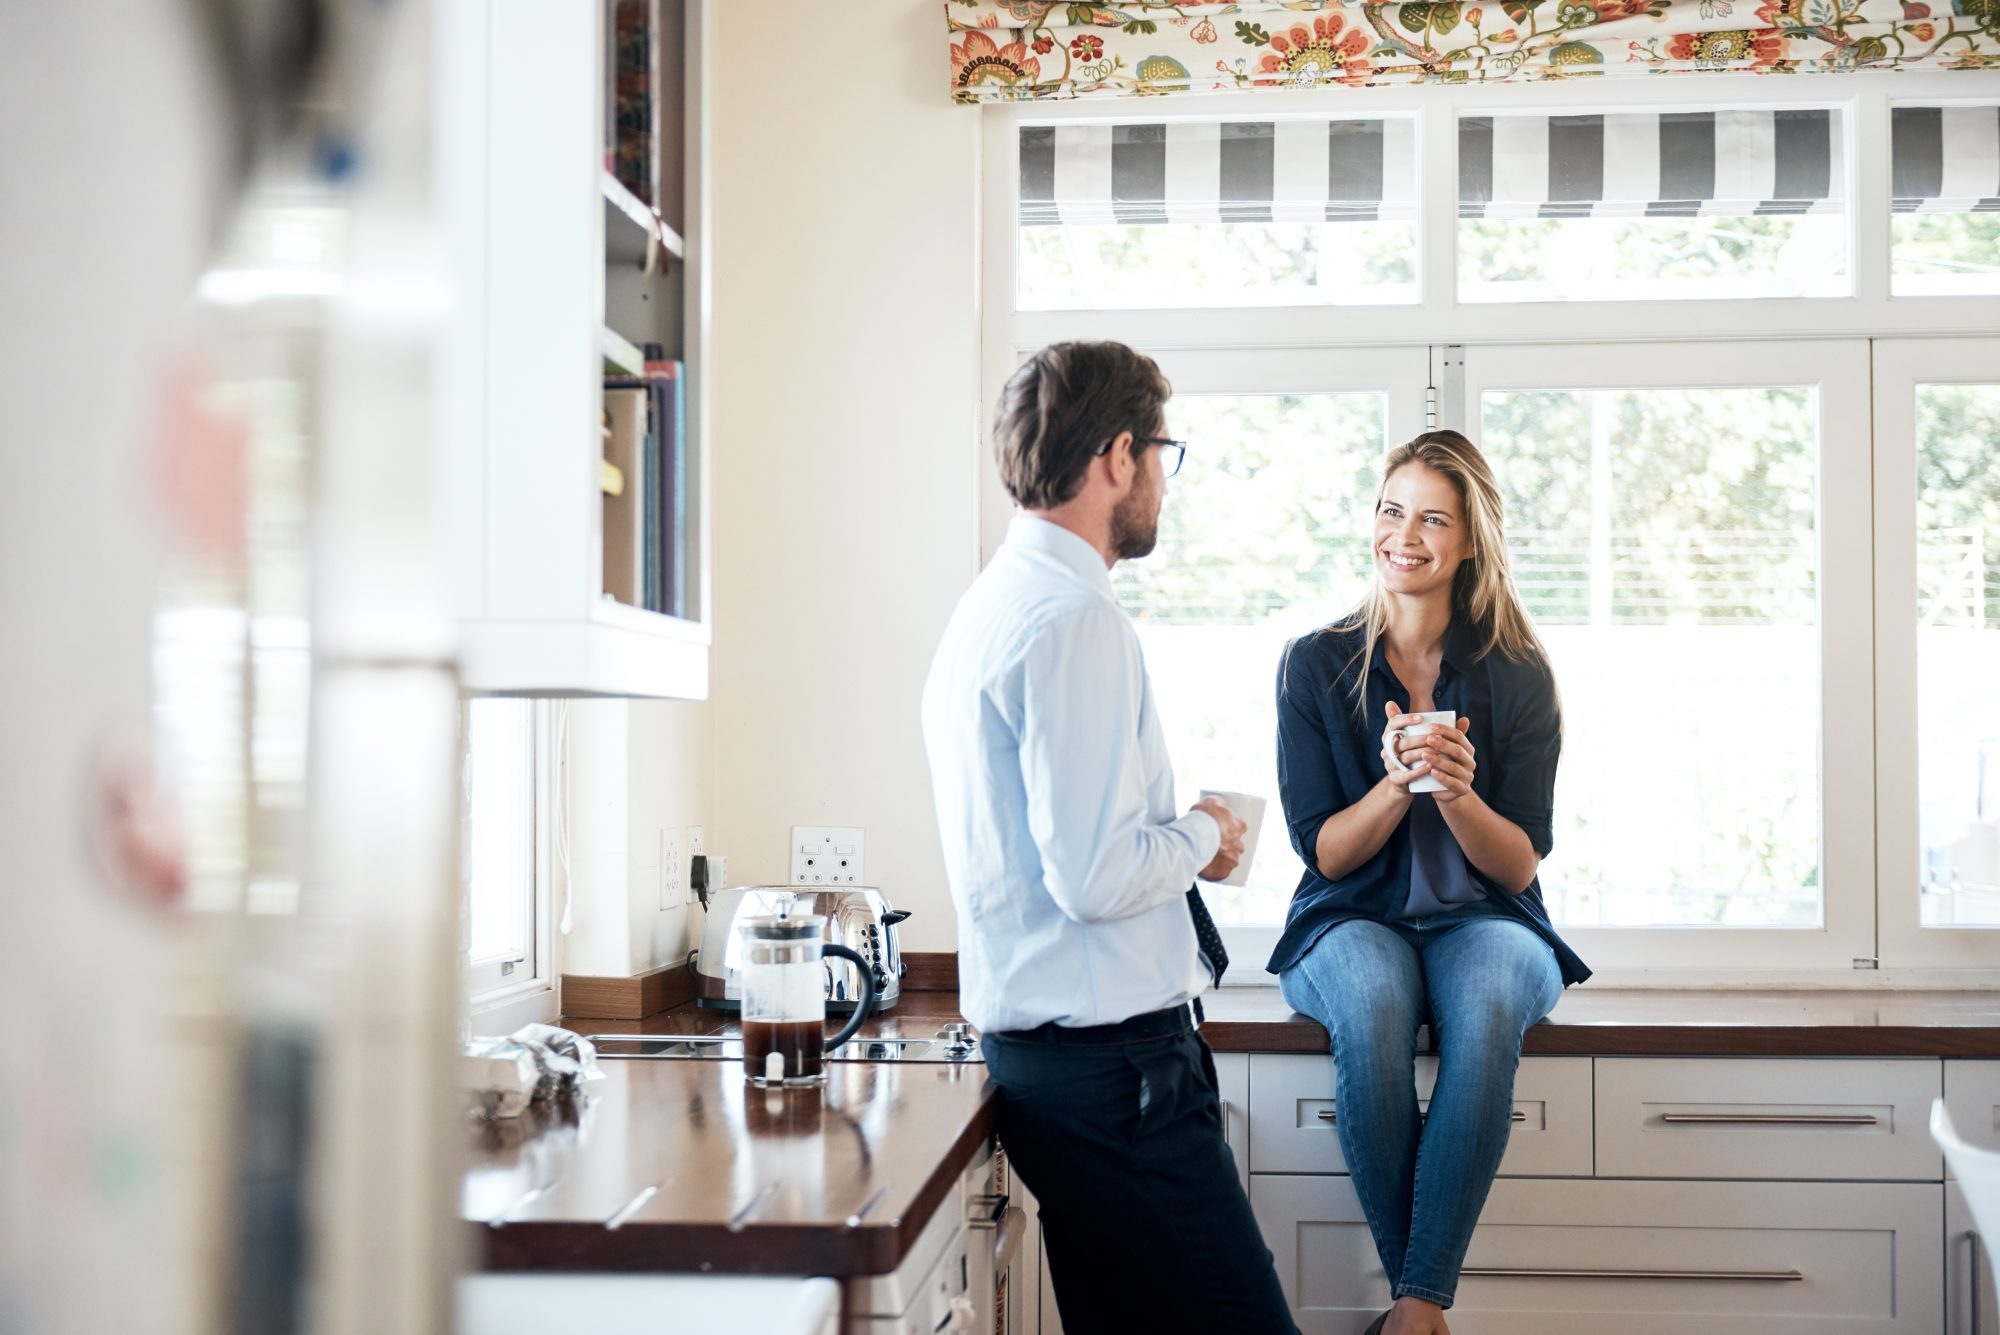 Couple at Home in the Kitchen drinking coffee